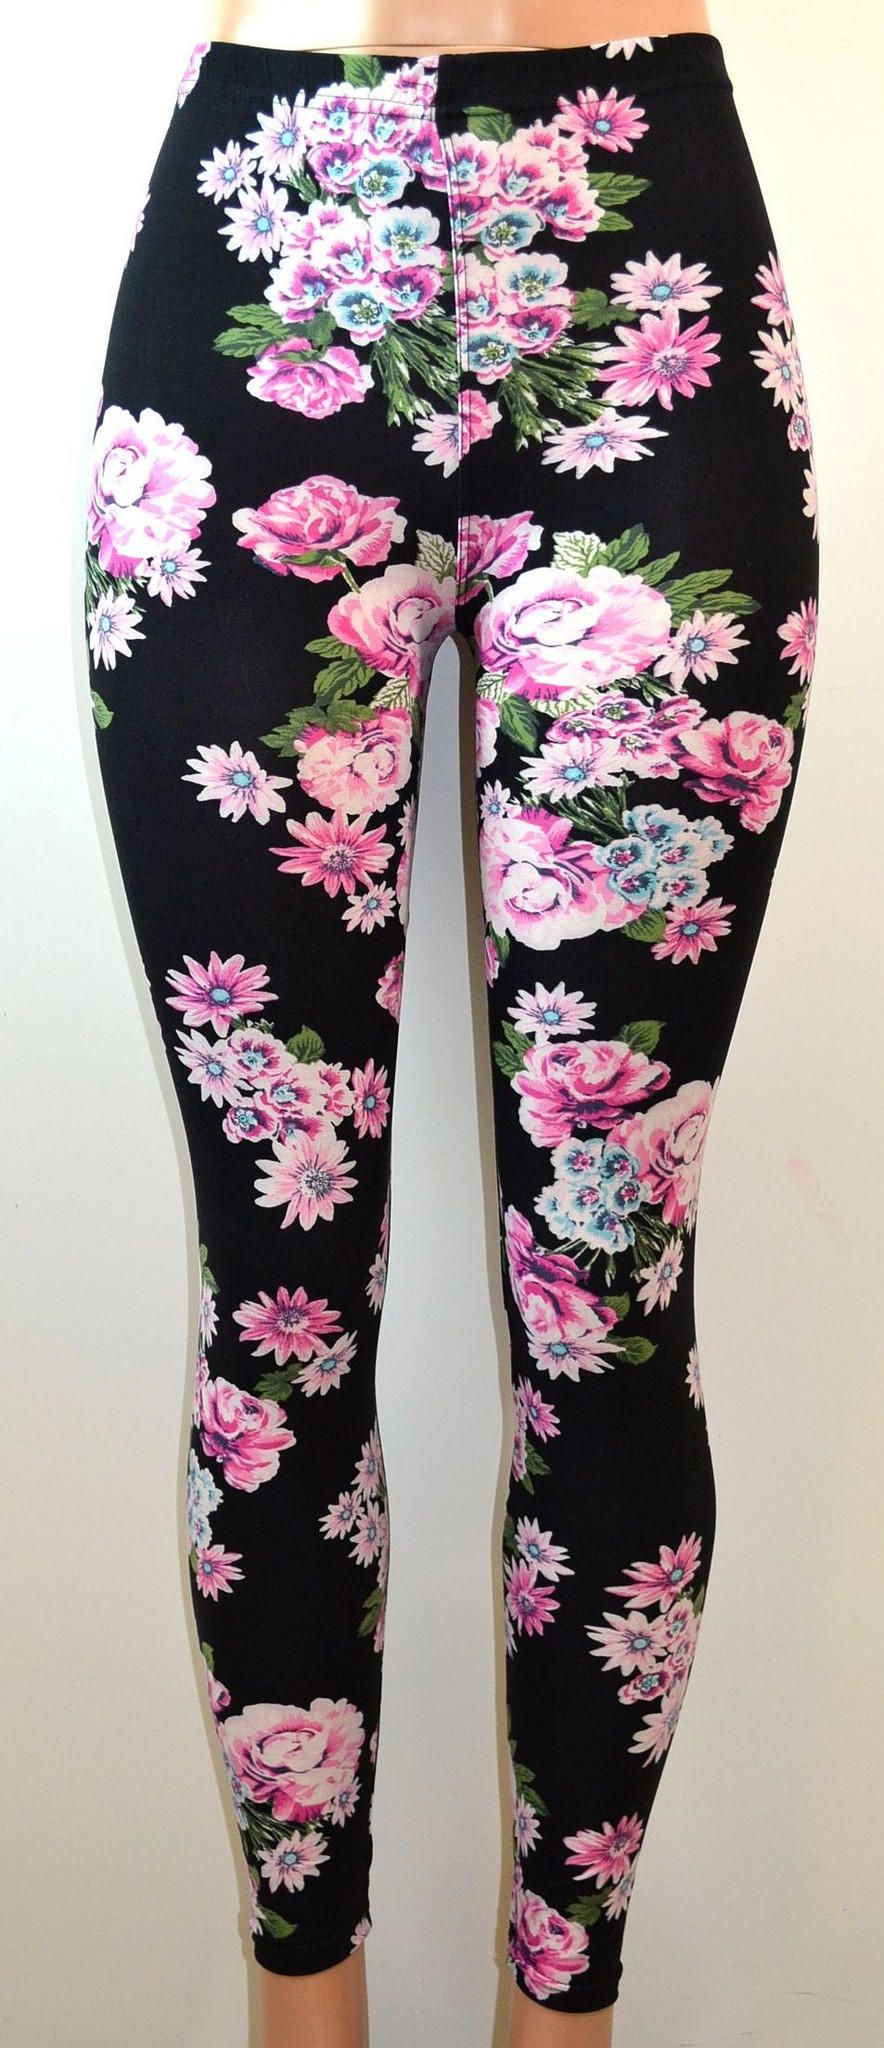 1c3c5185ba6b4 E&K All Over Floral Print Stretch Leggings | Fashion & Jewelry ...